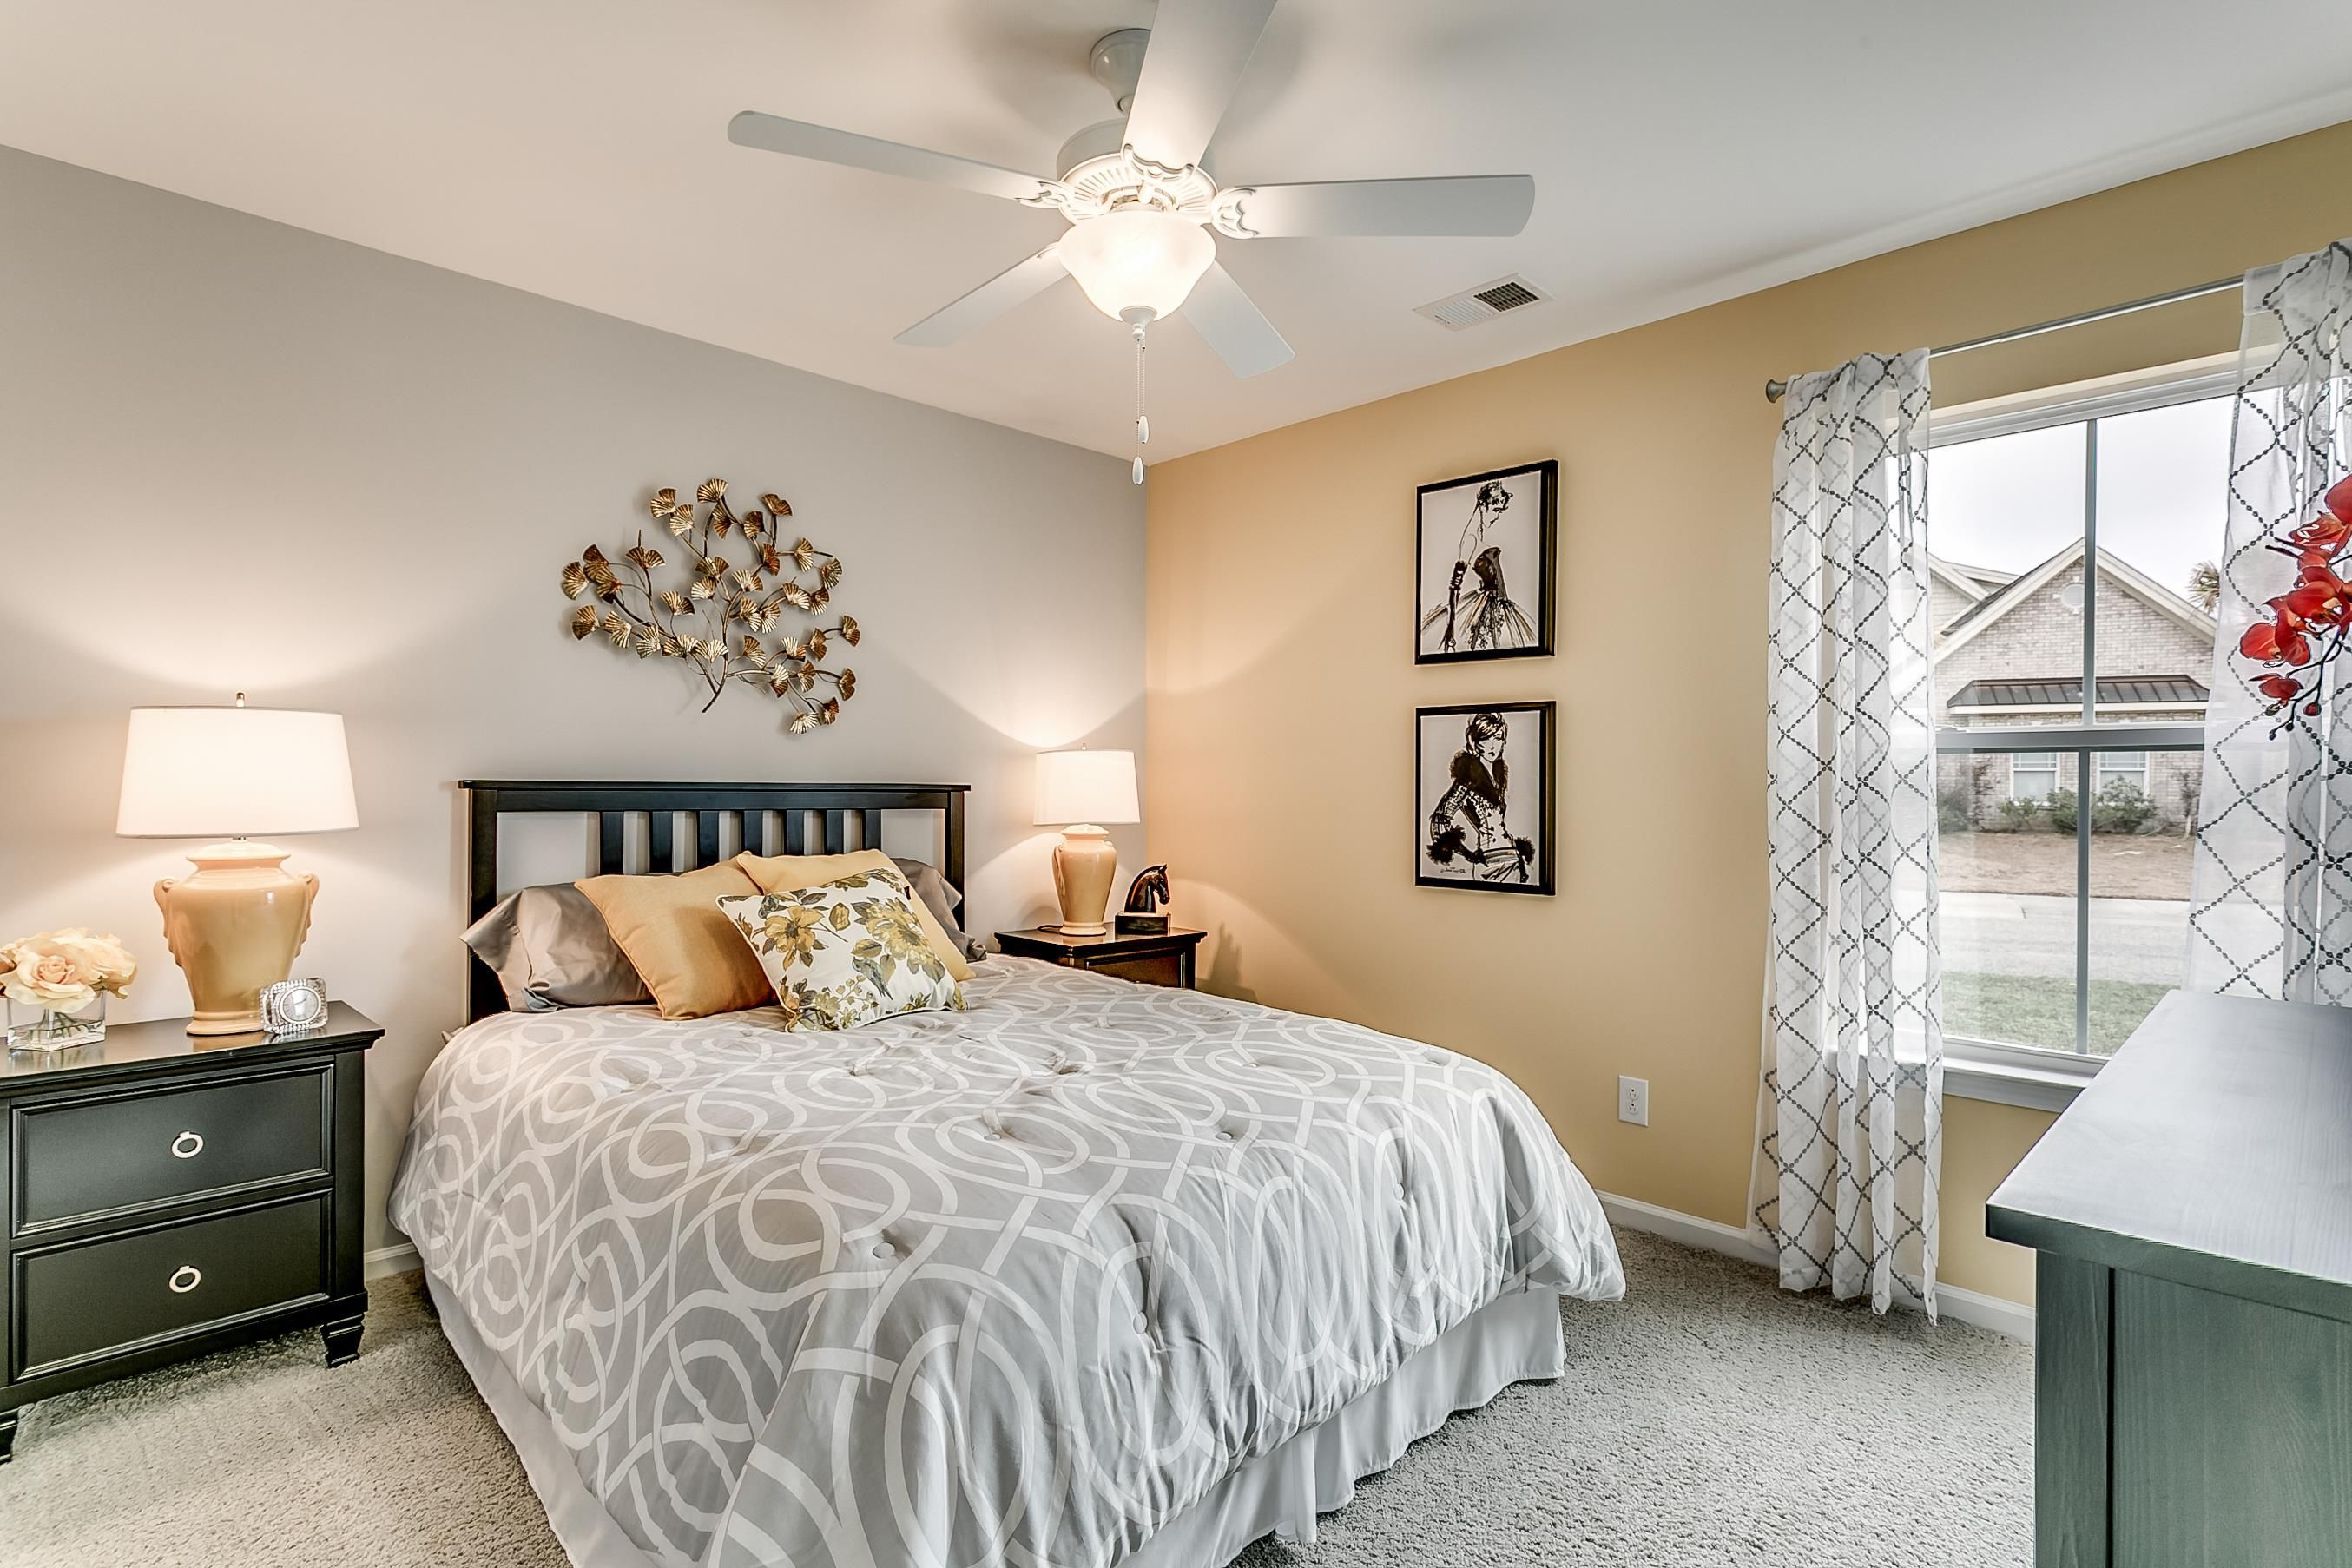 Bedroom featured in the Hickory By RealStar Homes in Wilmington, NC